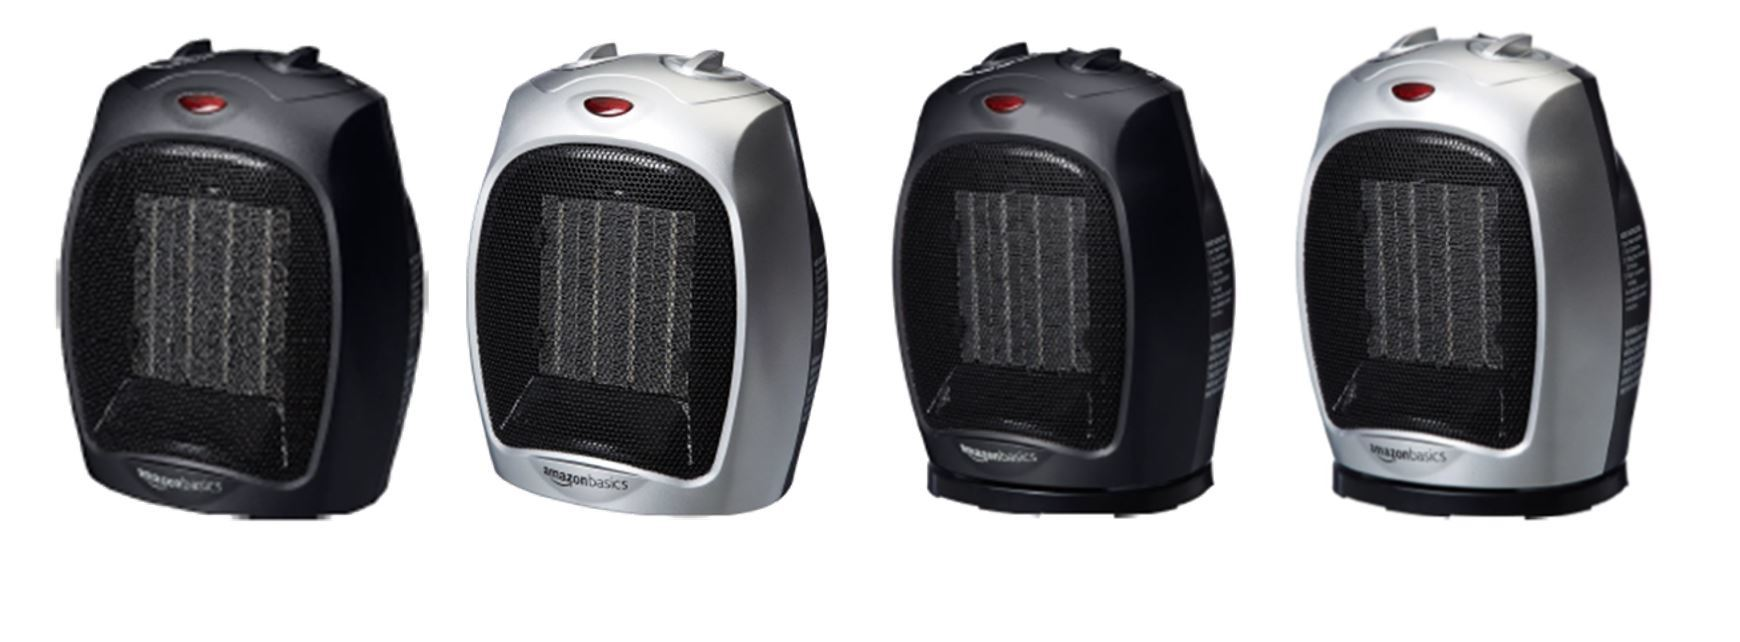 Amazon issues space heater recall in US, Canada, and Mexico